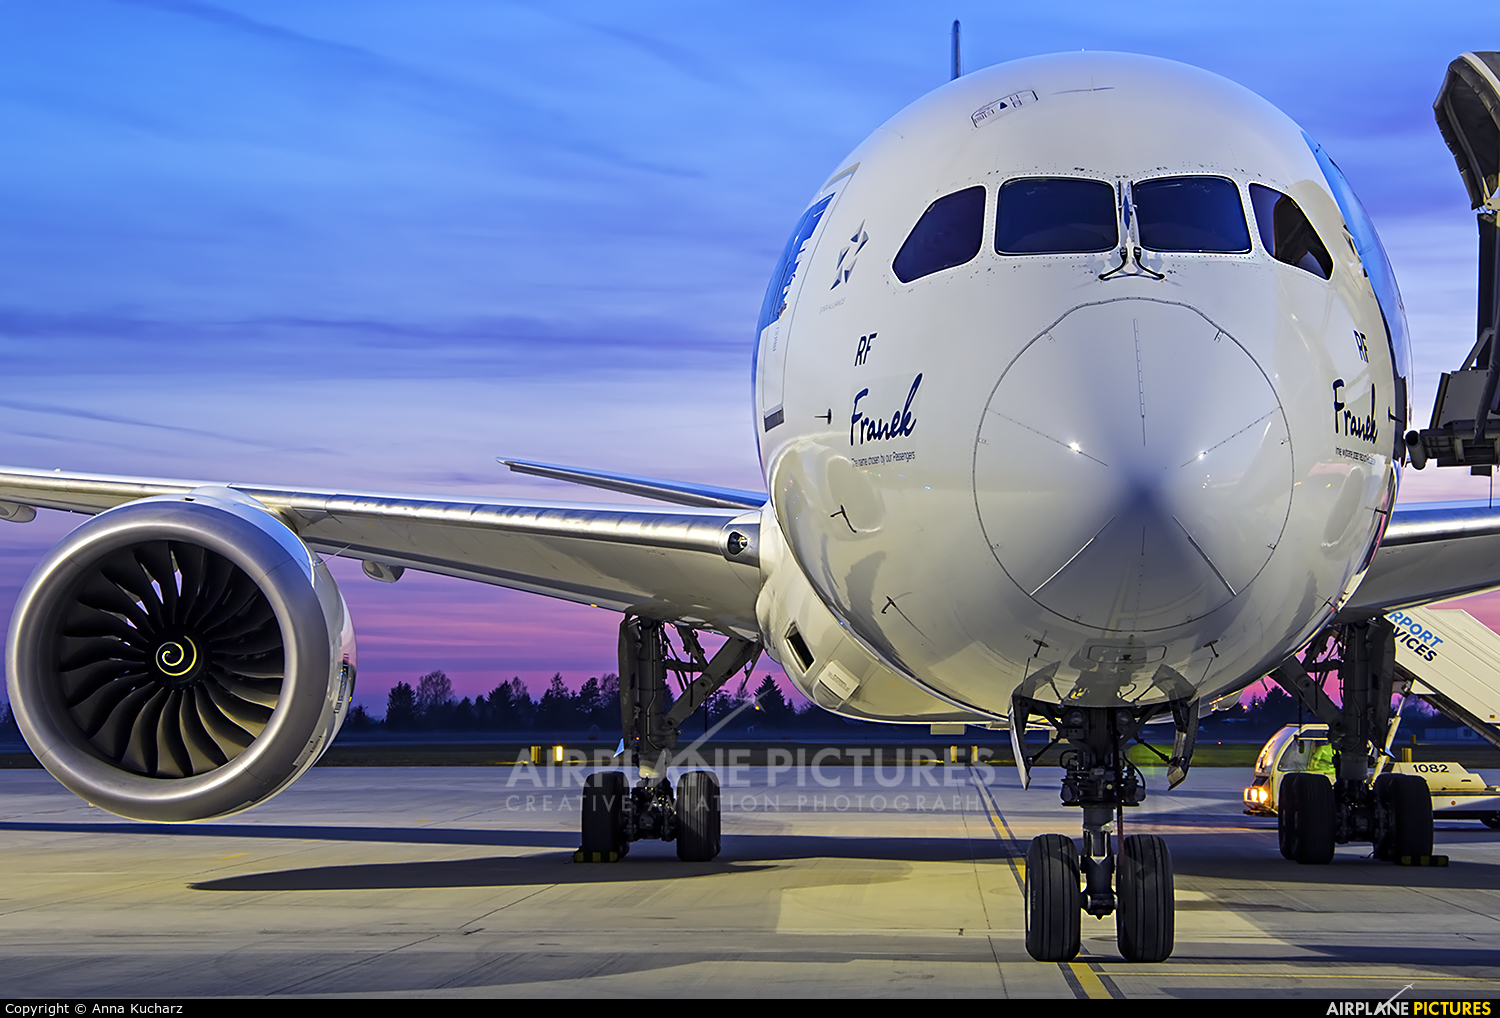 LOT - Polish Airlines SP-LRF aircraft at Warsaw - Frederic Chopin